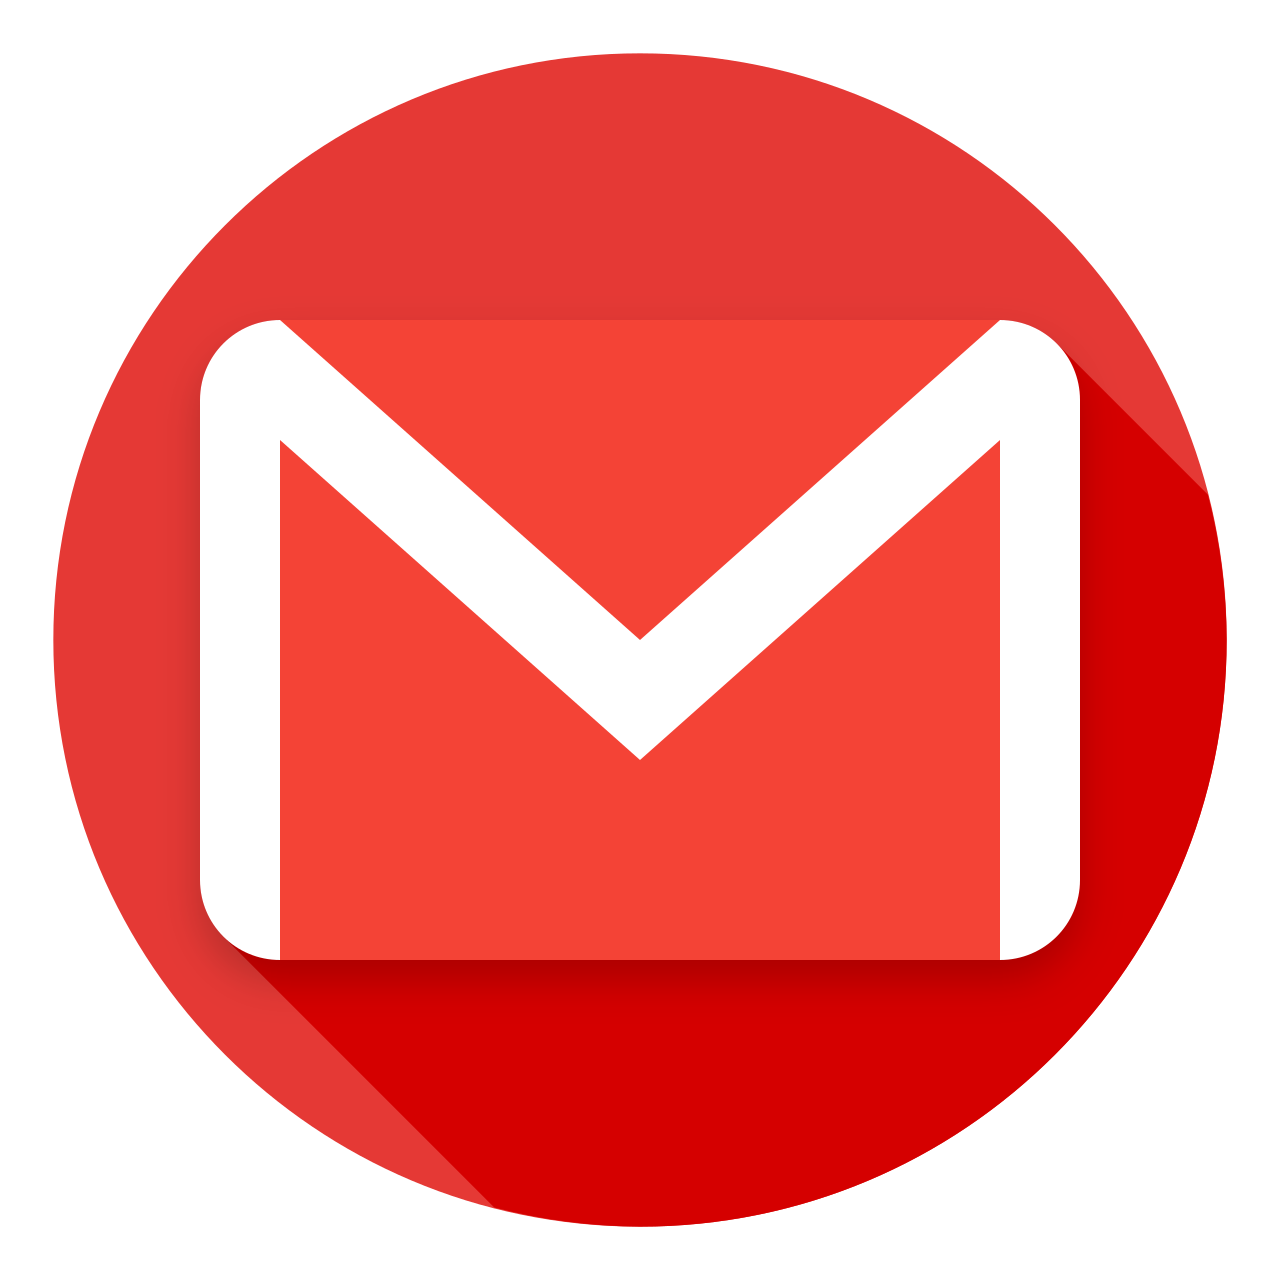 Gmail logo png transparent background. Save icon format free